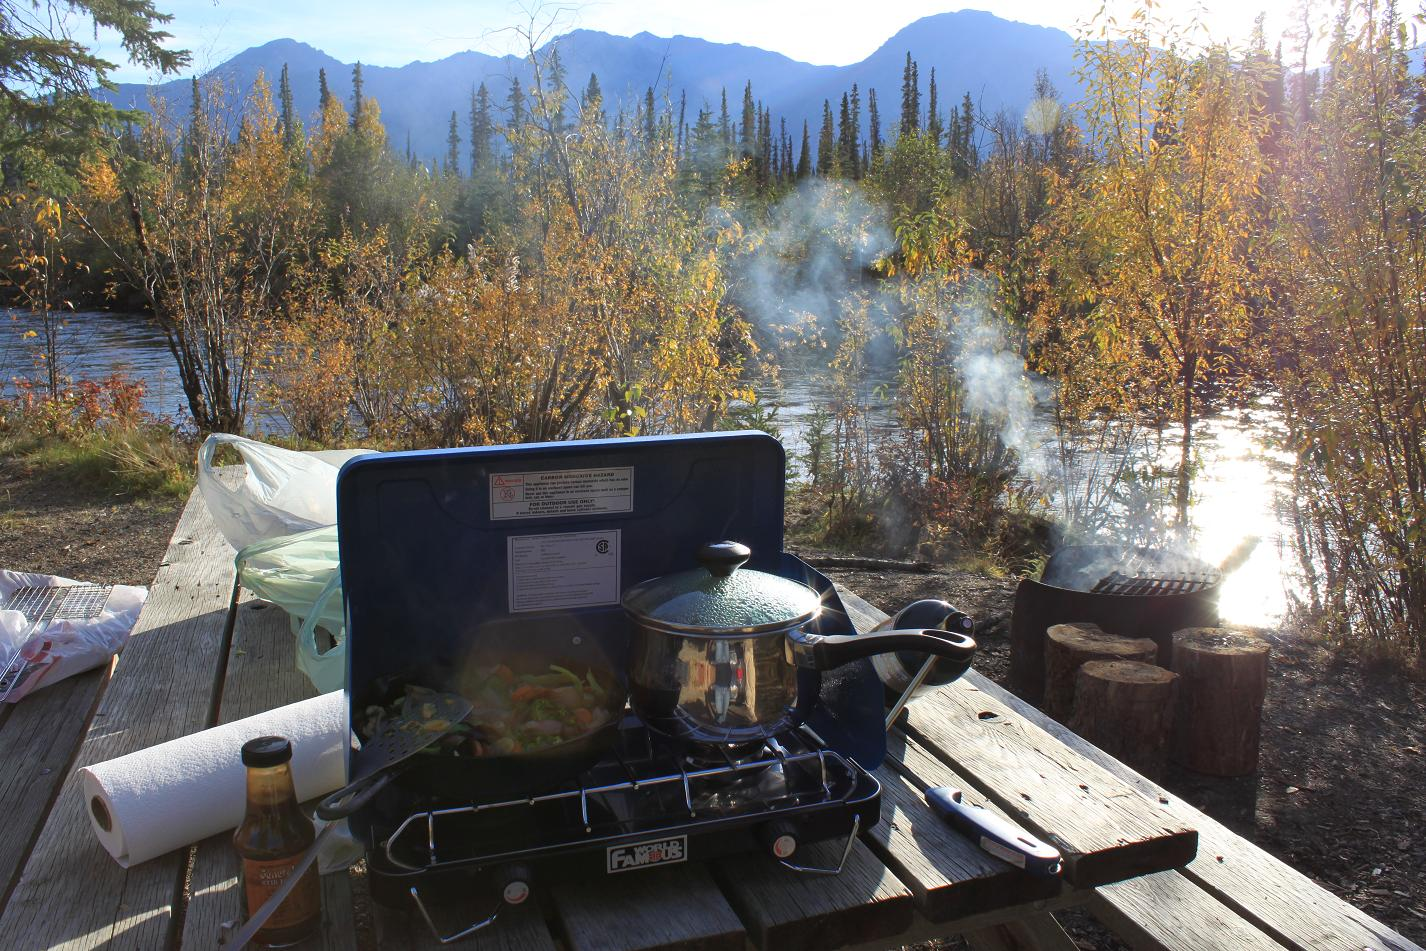 Camping in the Yukon